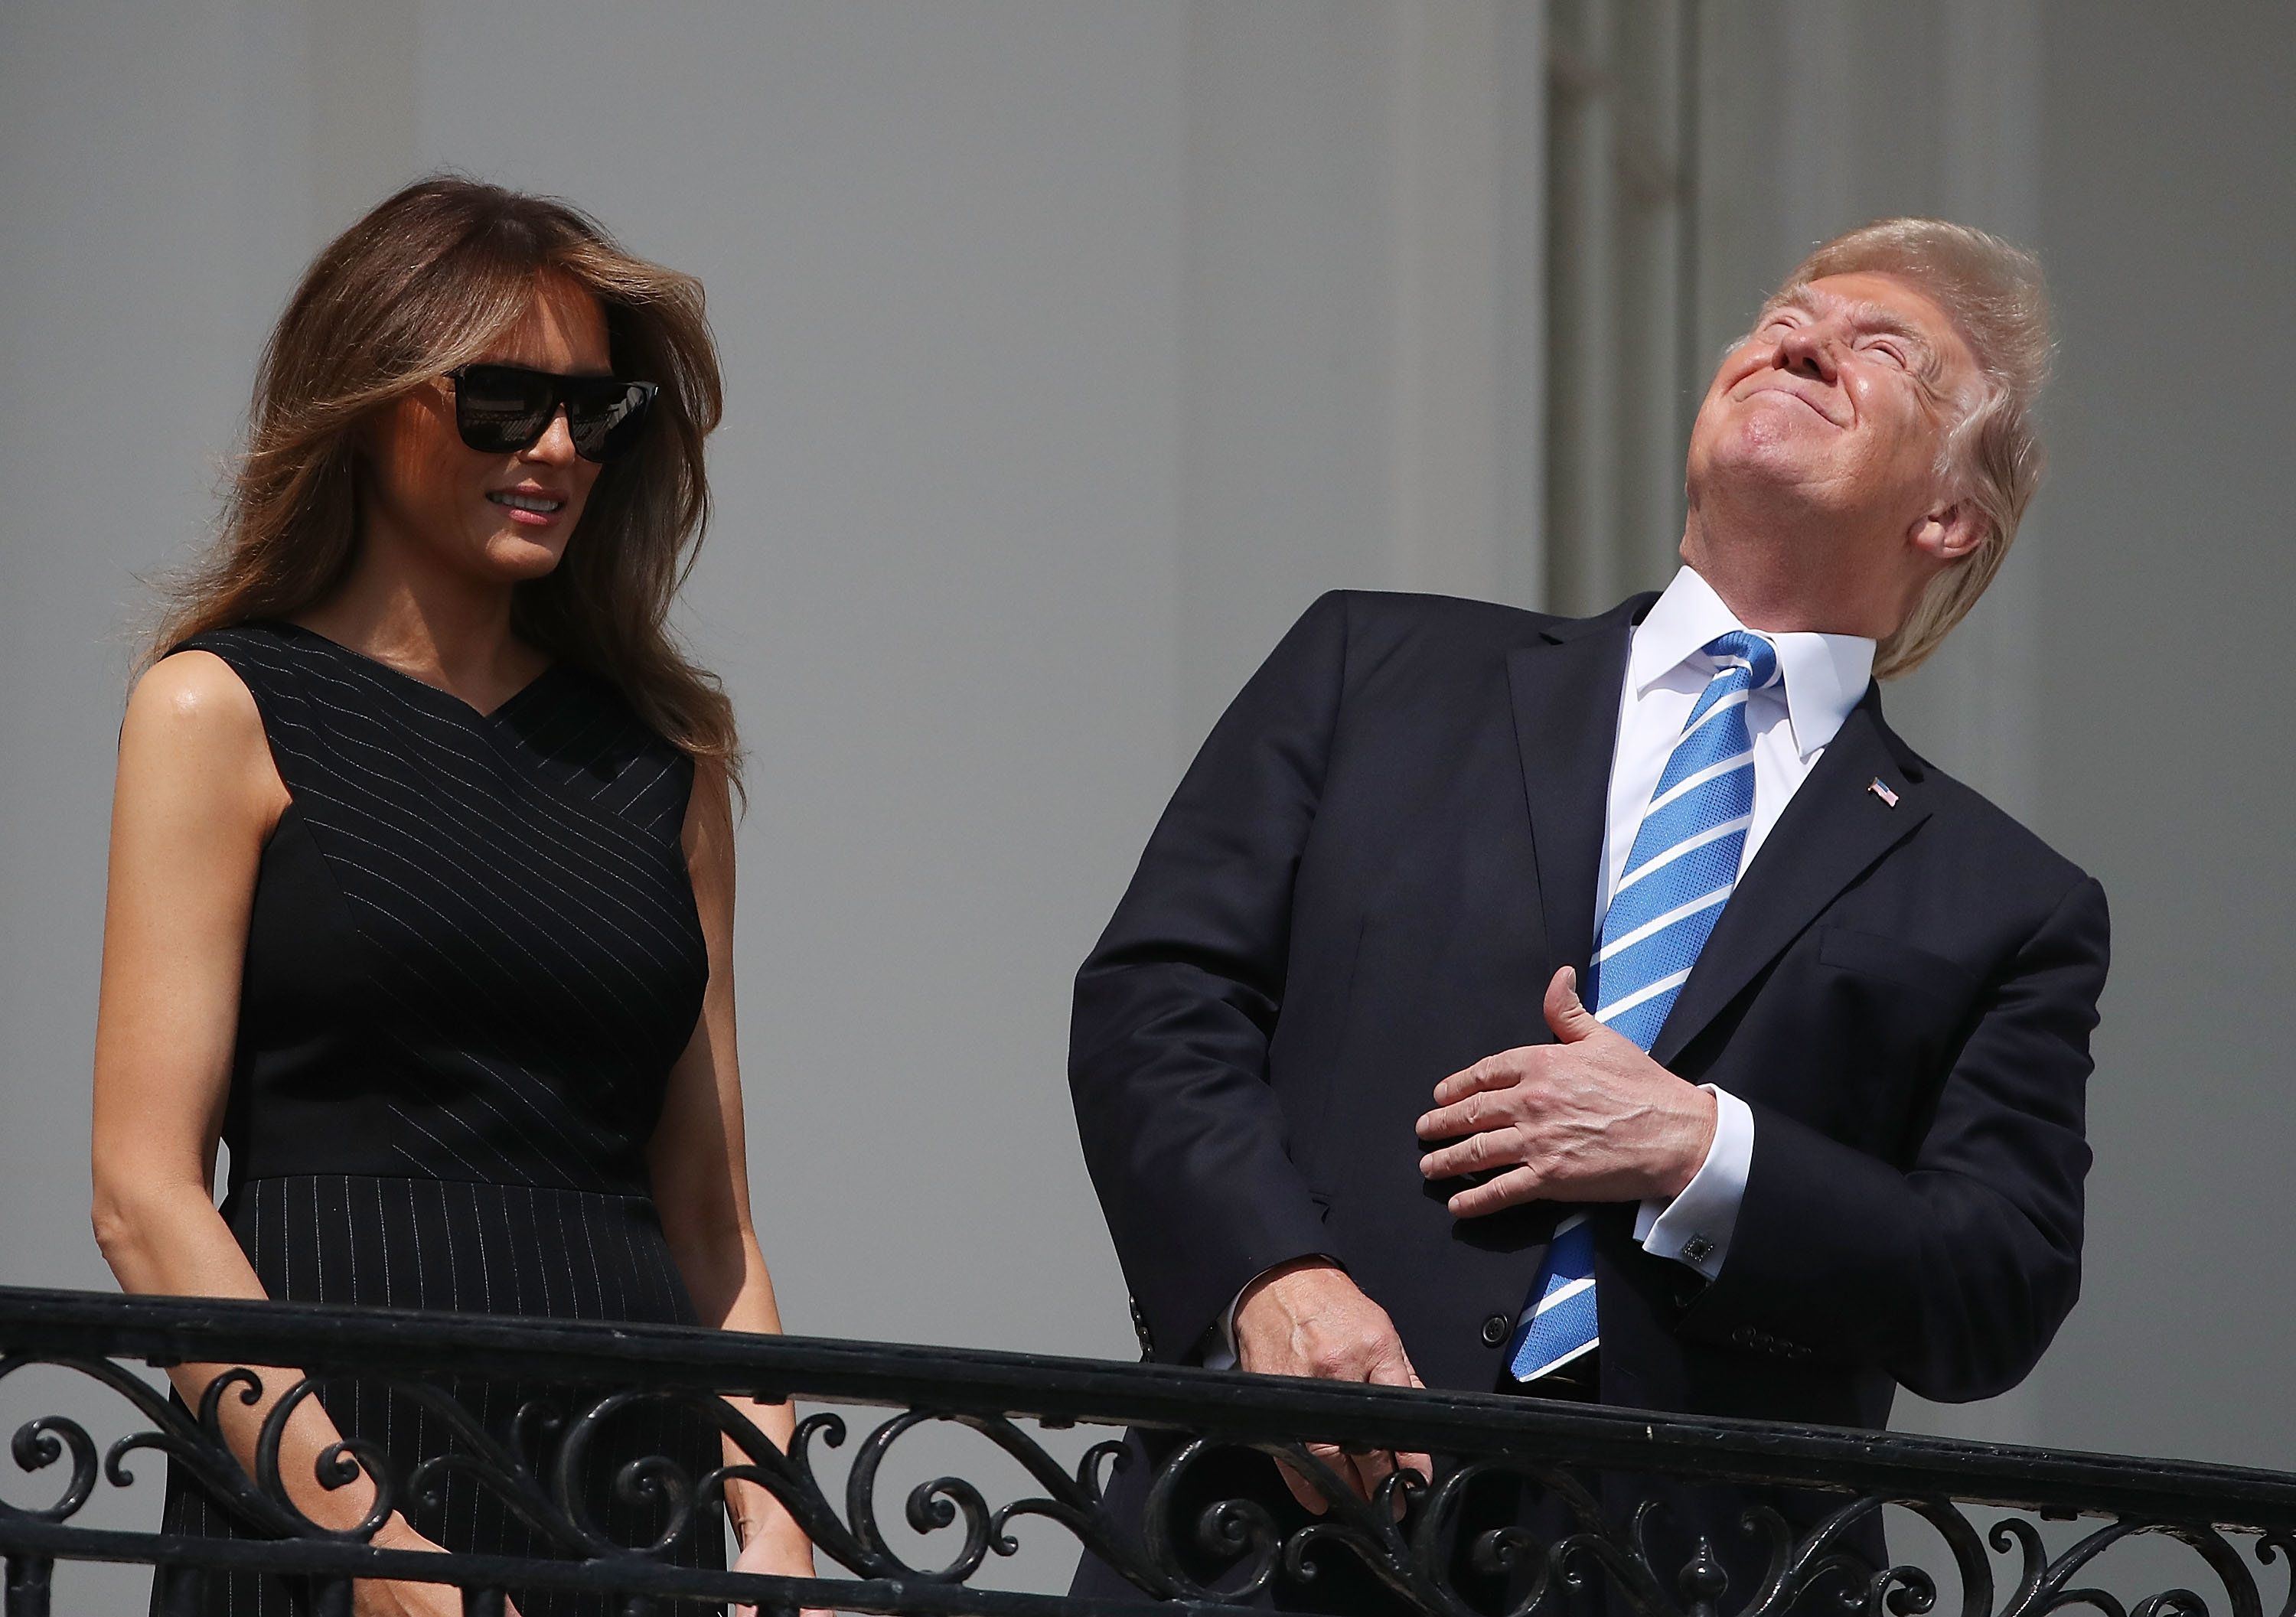 Trump Learns The True Risk Of Staring At The Sun During An